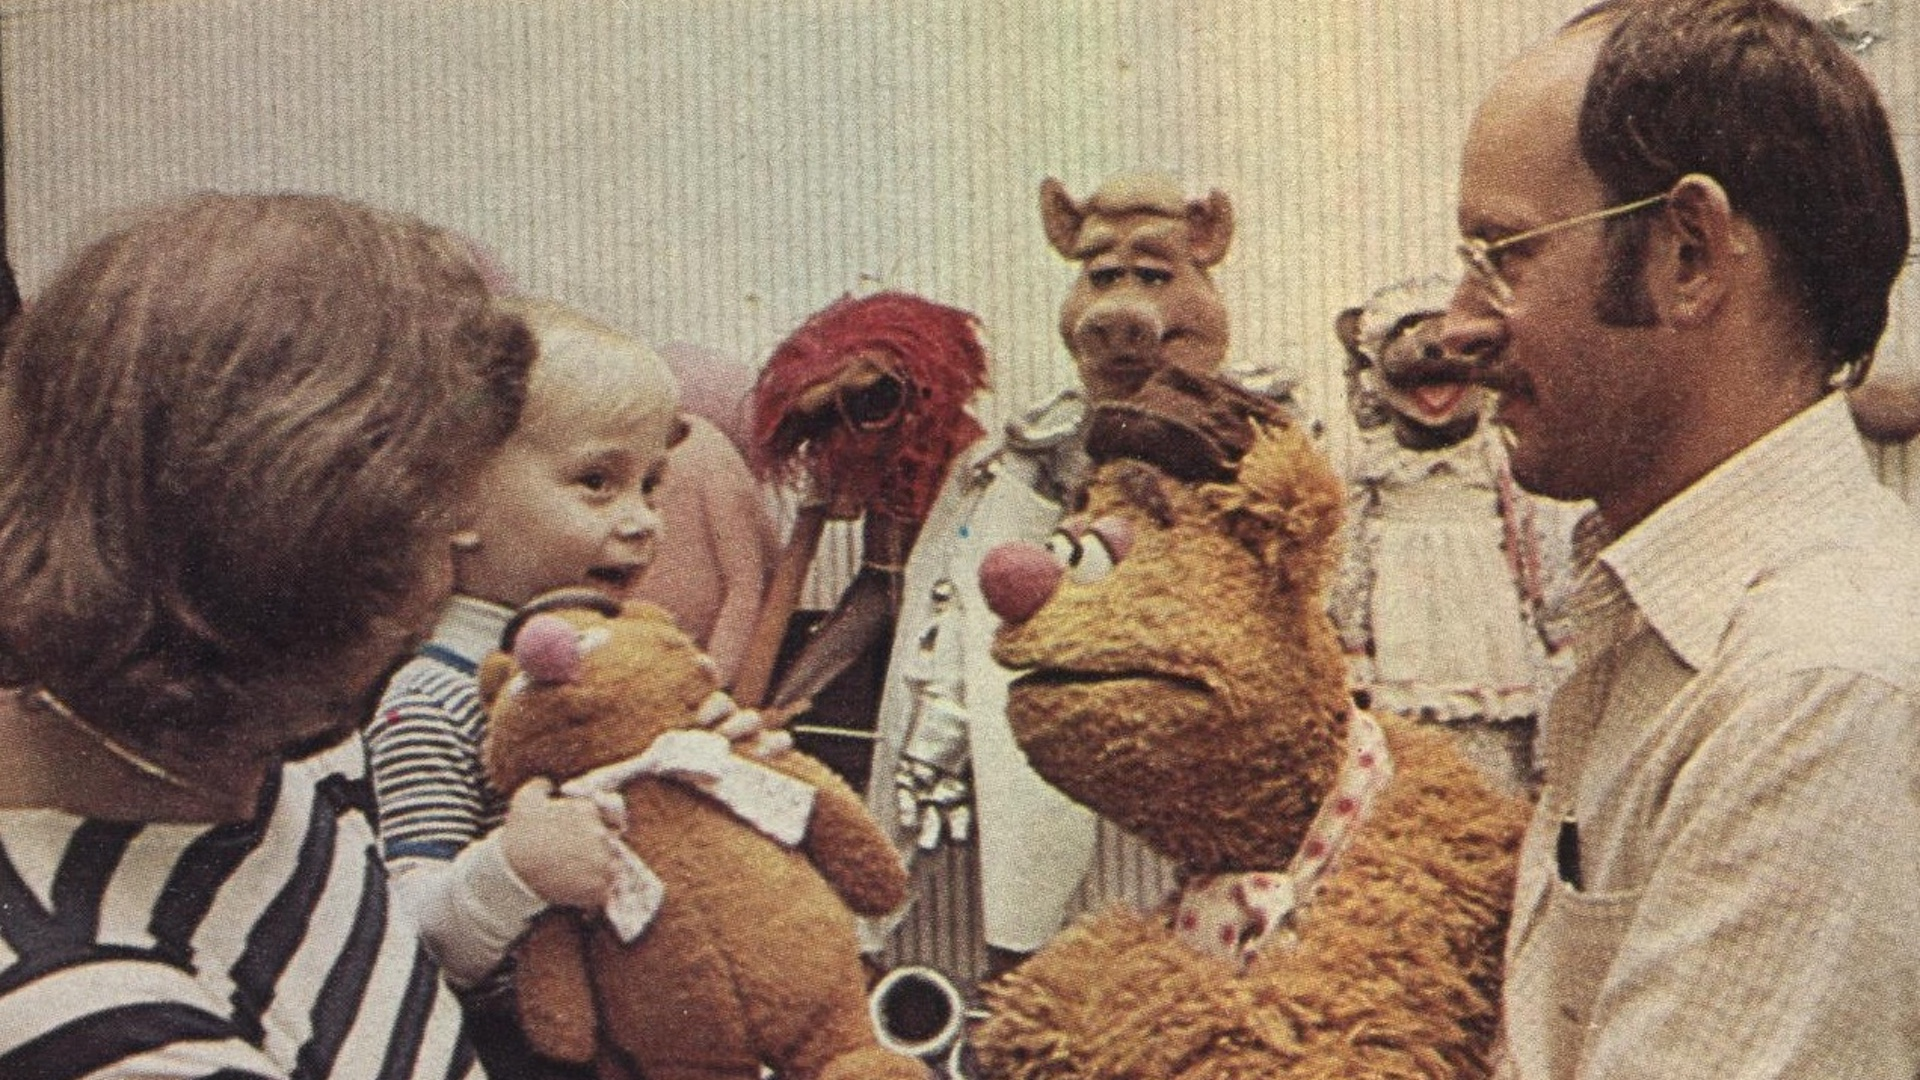 frank-oz-says-that-disney-just-doesnt-get-the-muppets-they-dont-get-the-true-rebellion-social.jpg